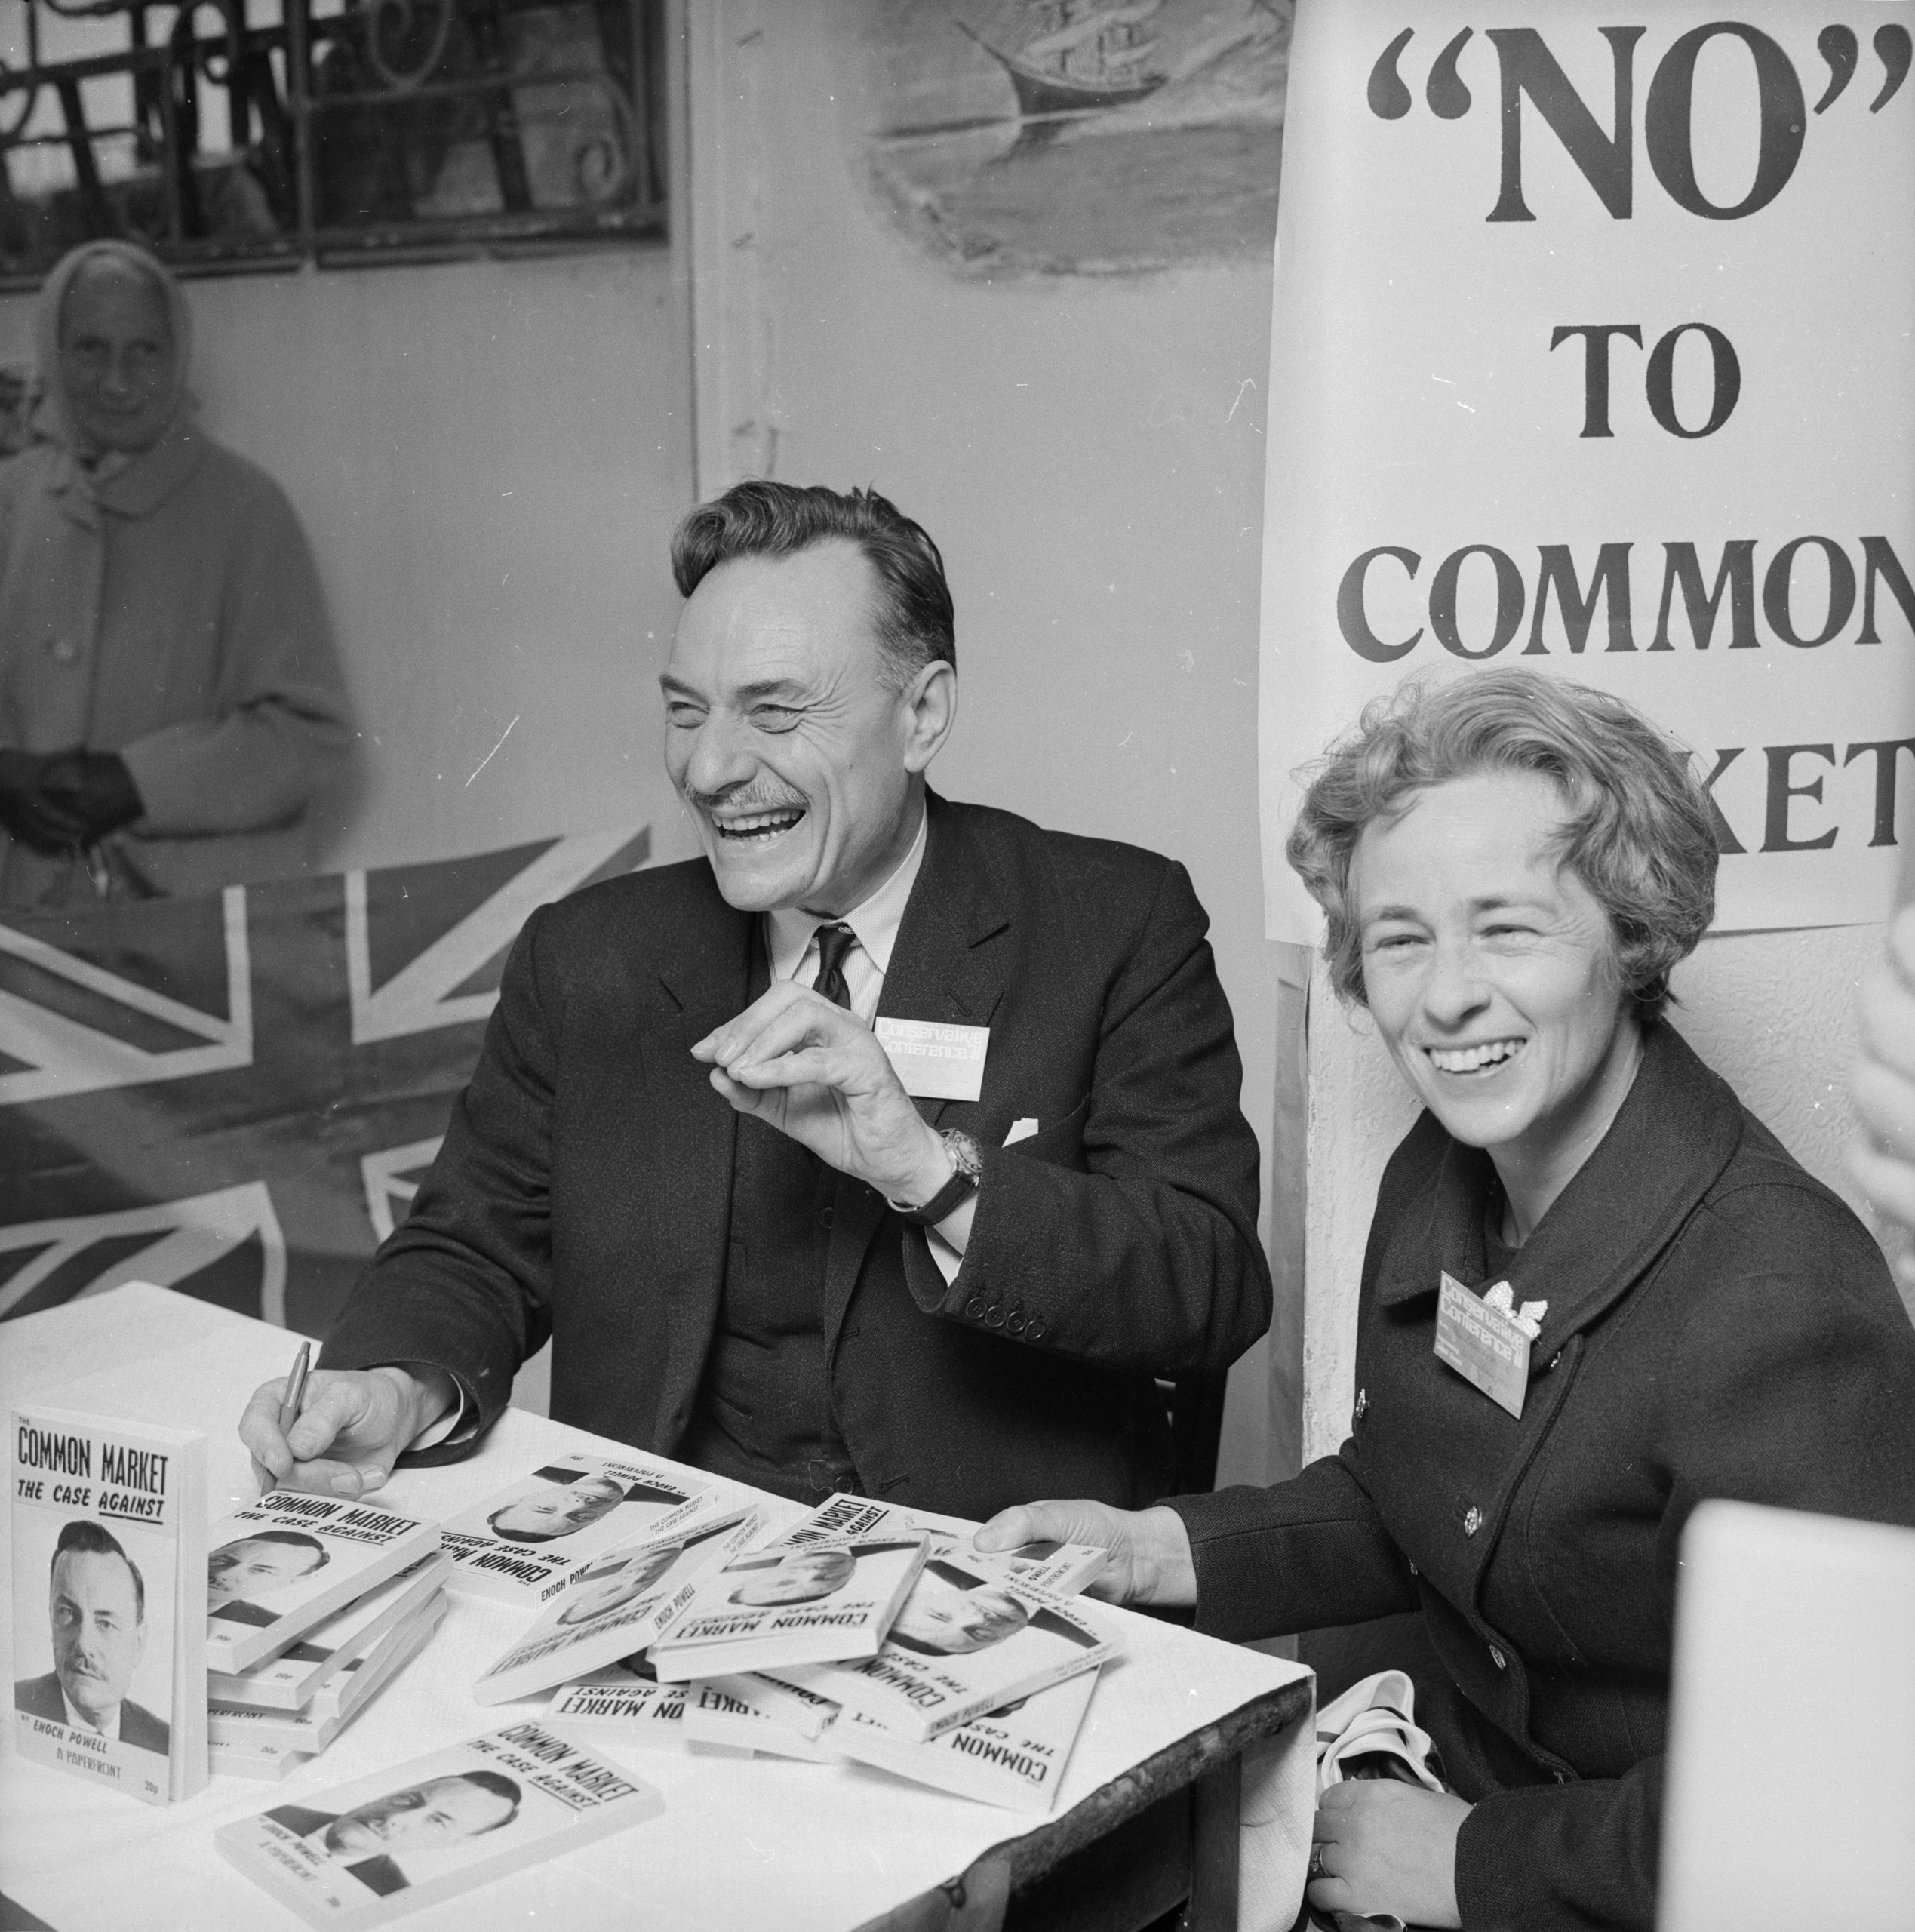 English Conservative politician, (John) Enoch Powell with his wife as he signs copies of his book 'Common Market - The Case Against' during the Conservative Party Conference in Brighton, Oct. 13, 1971